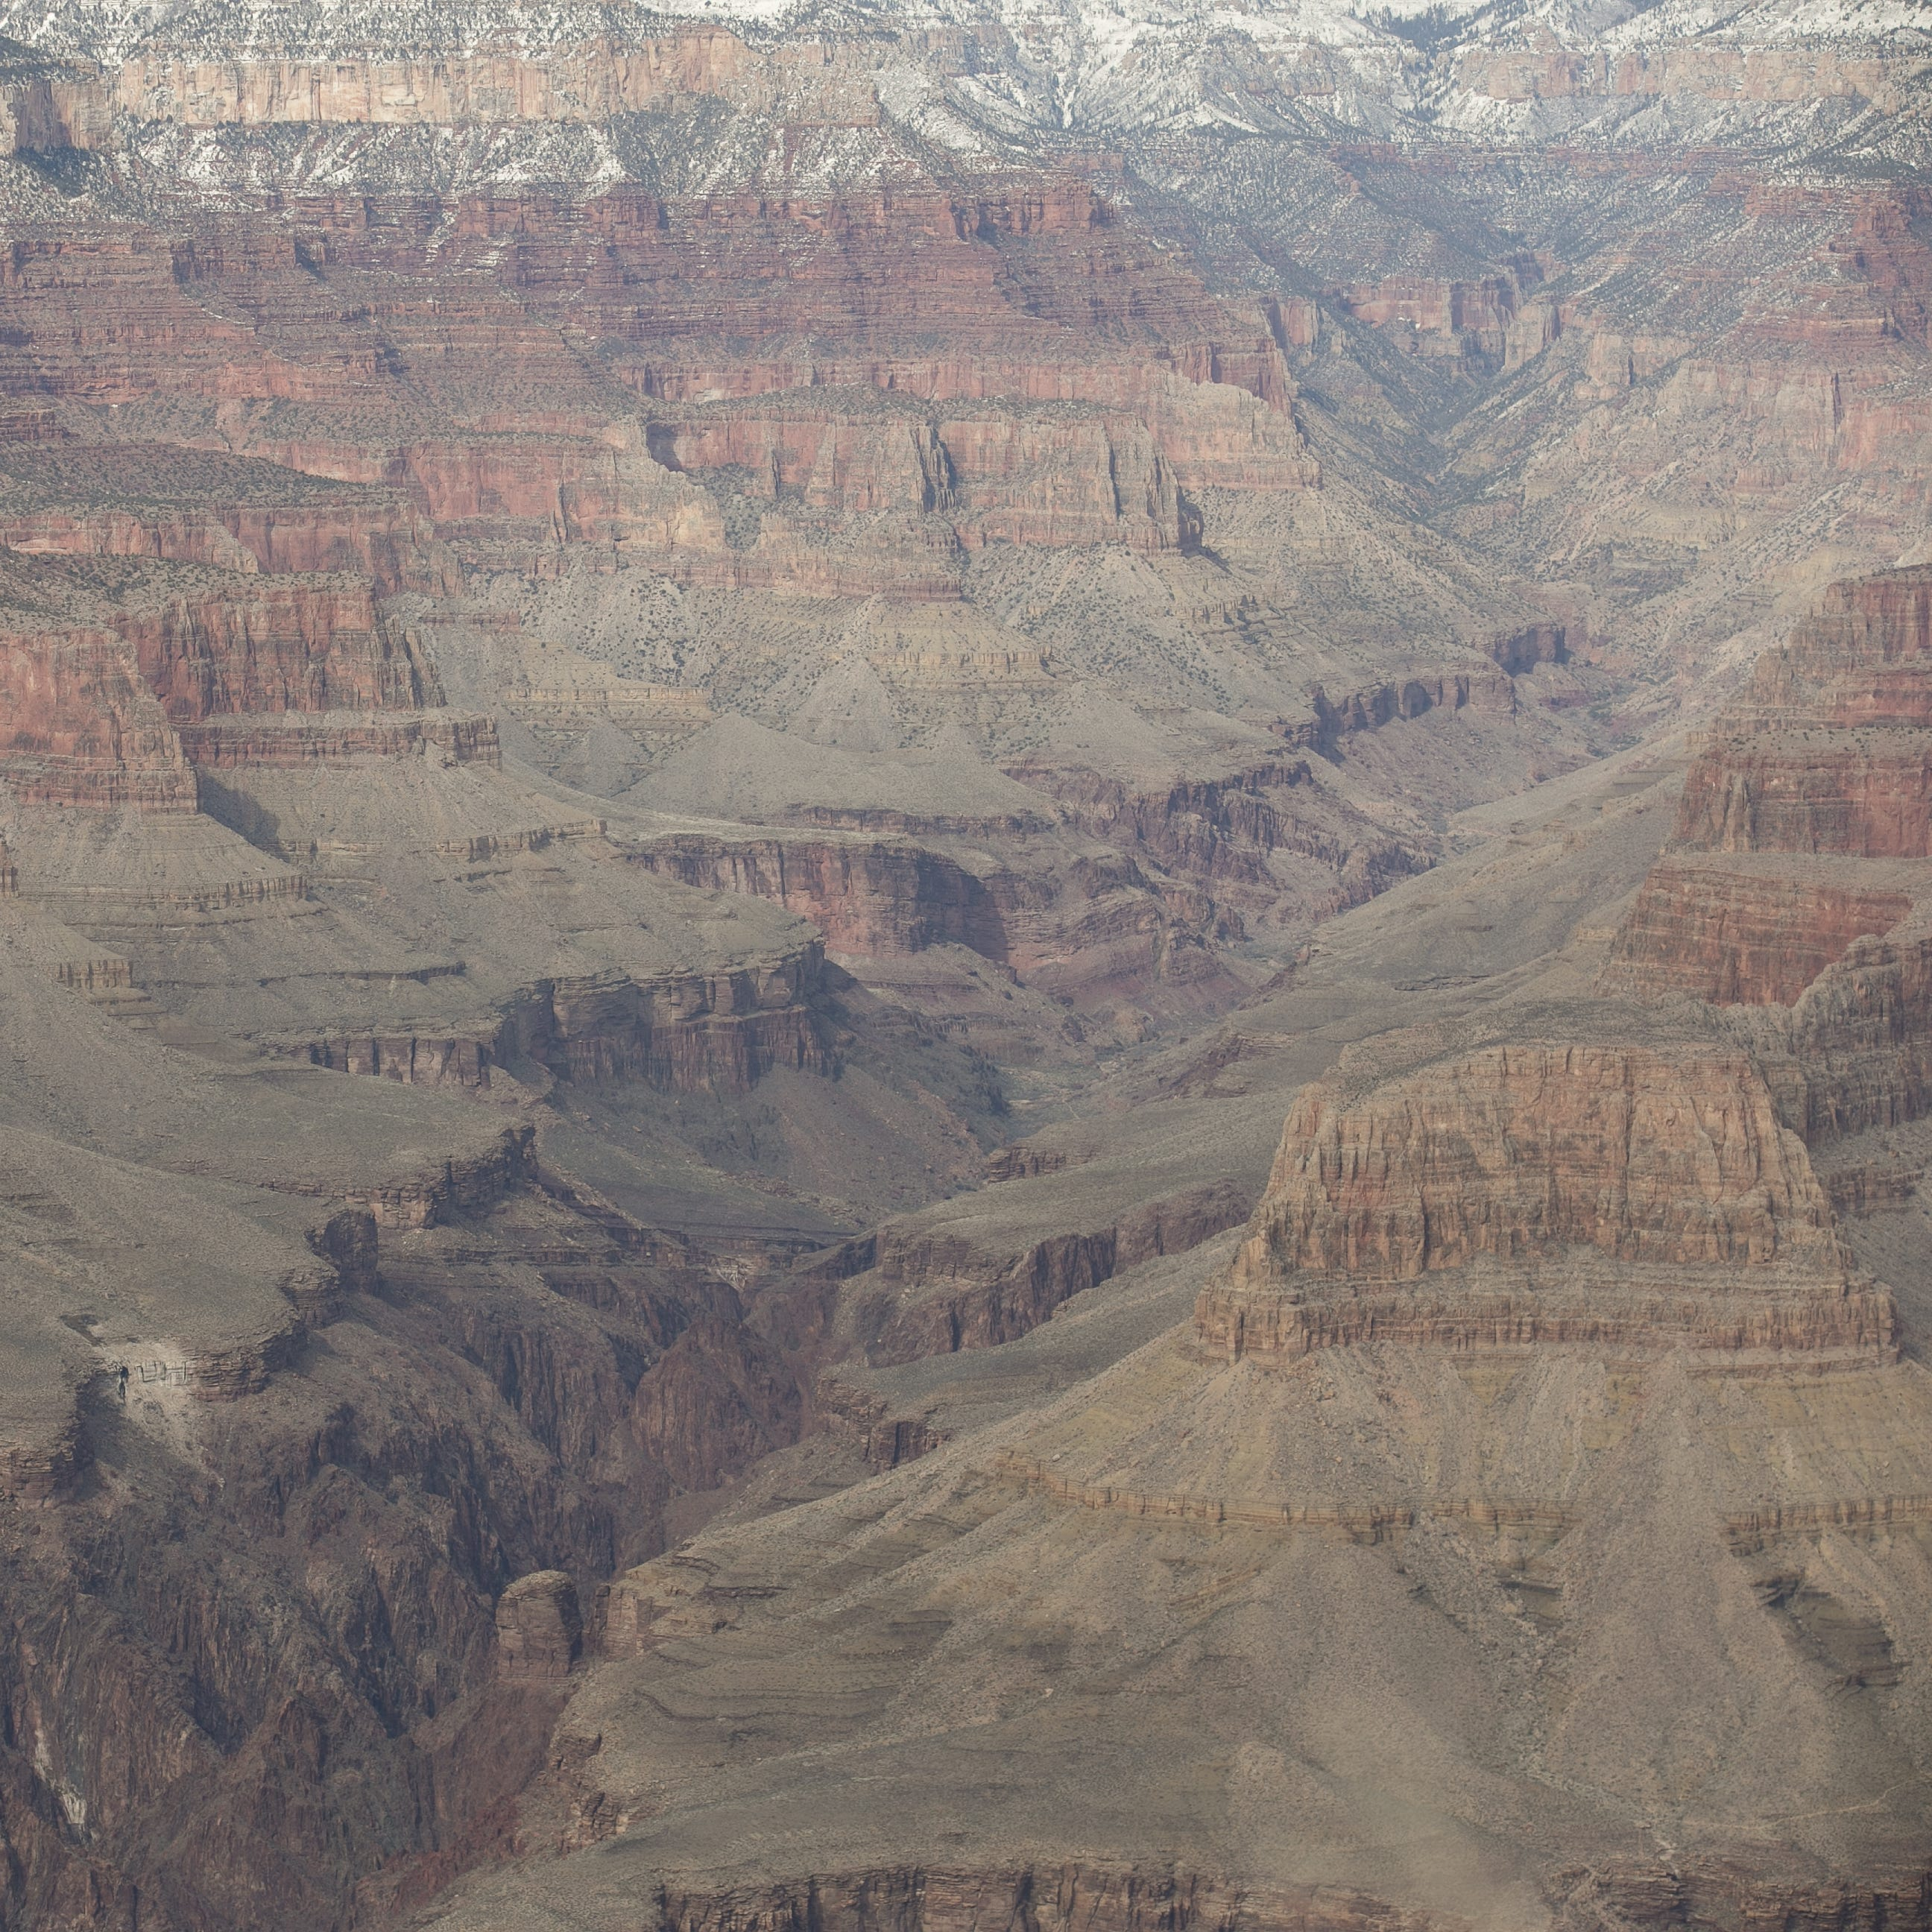 Officials identify man who fell to his death at Grand Canyon National Park